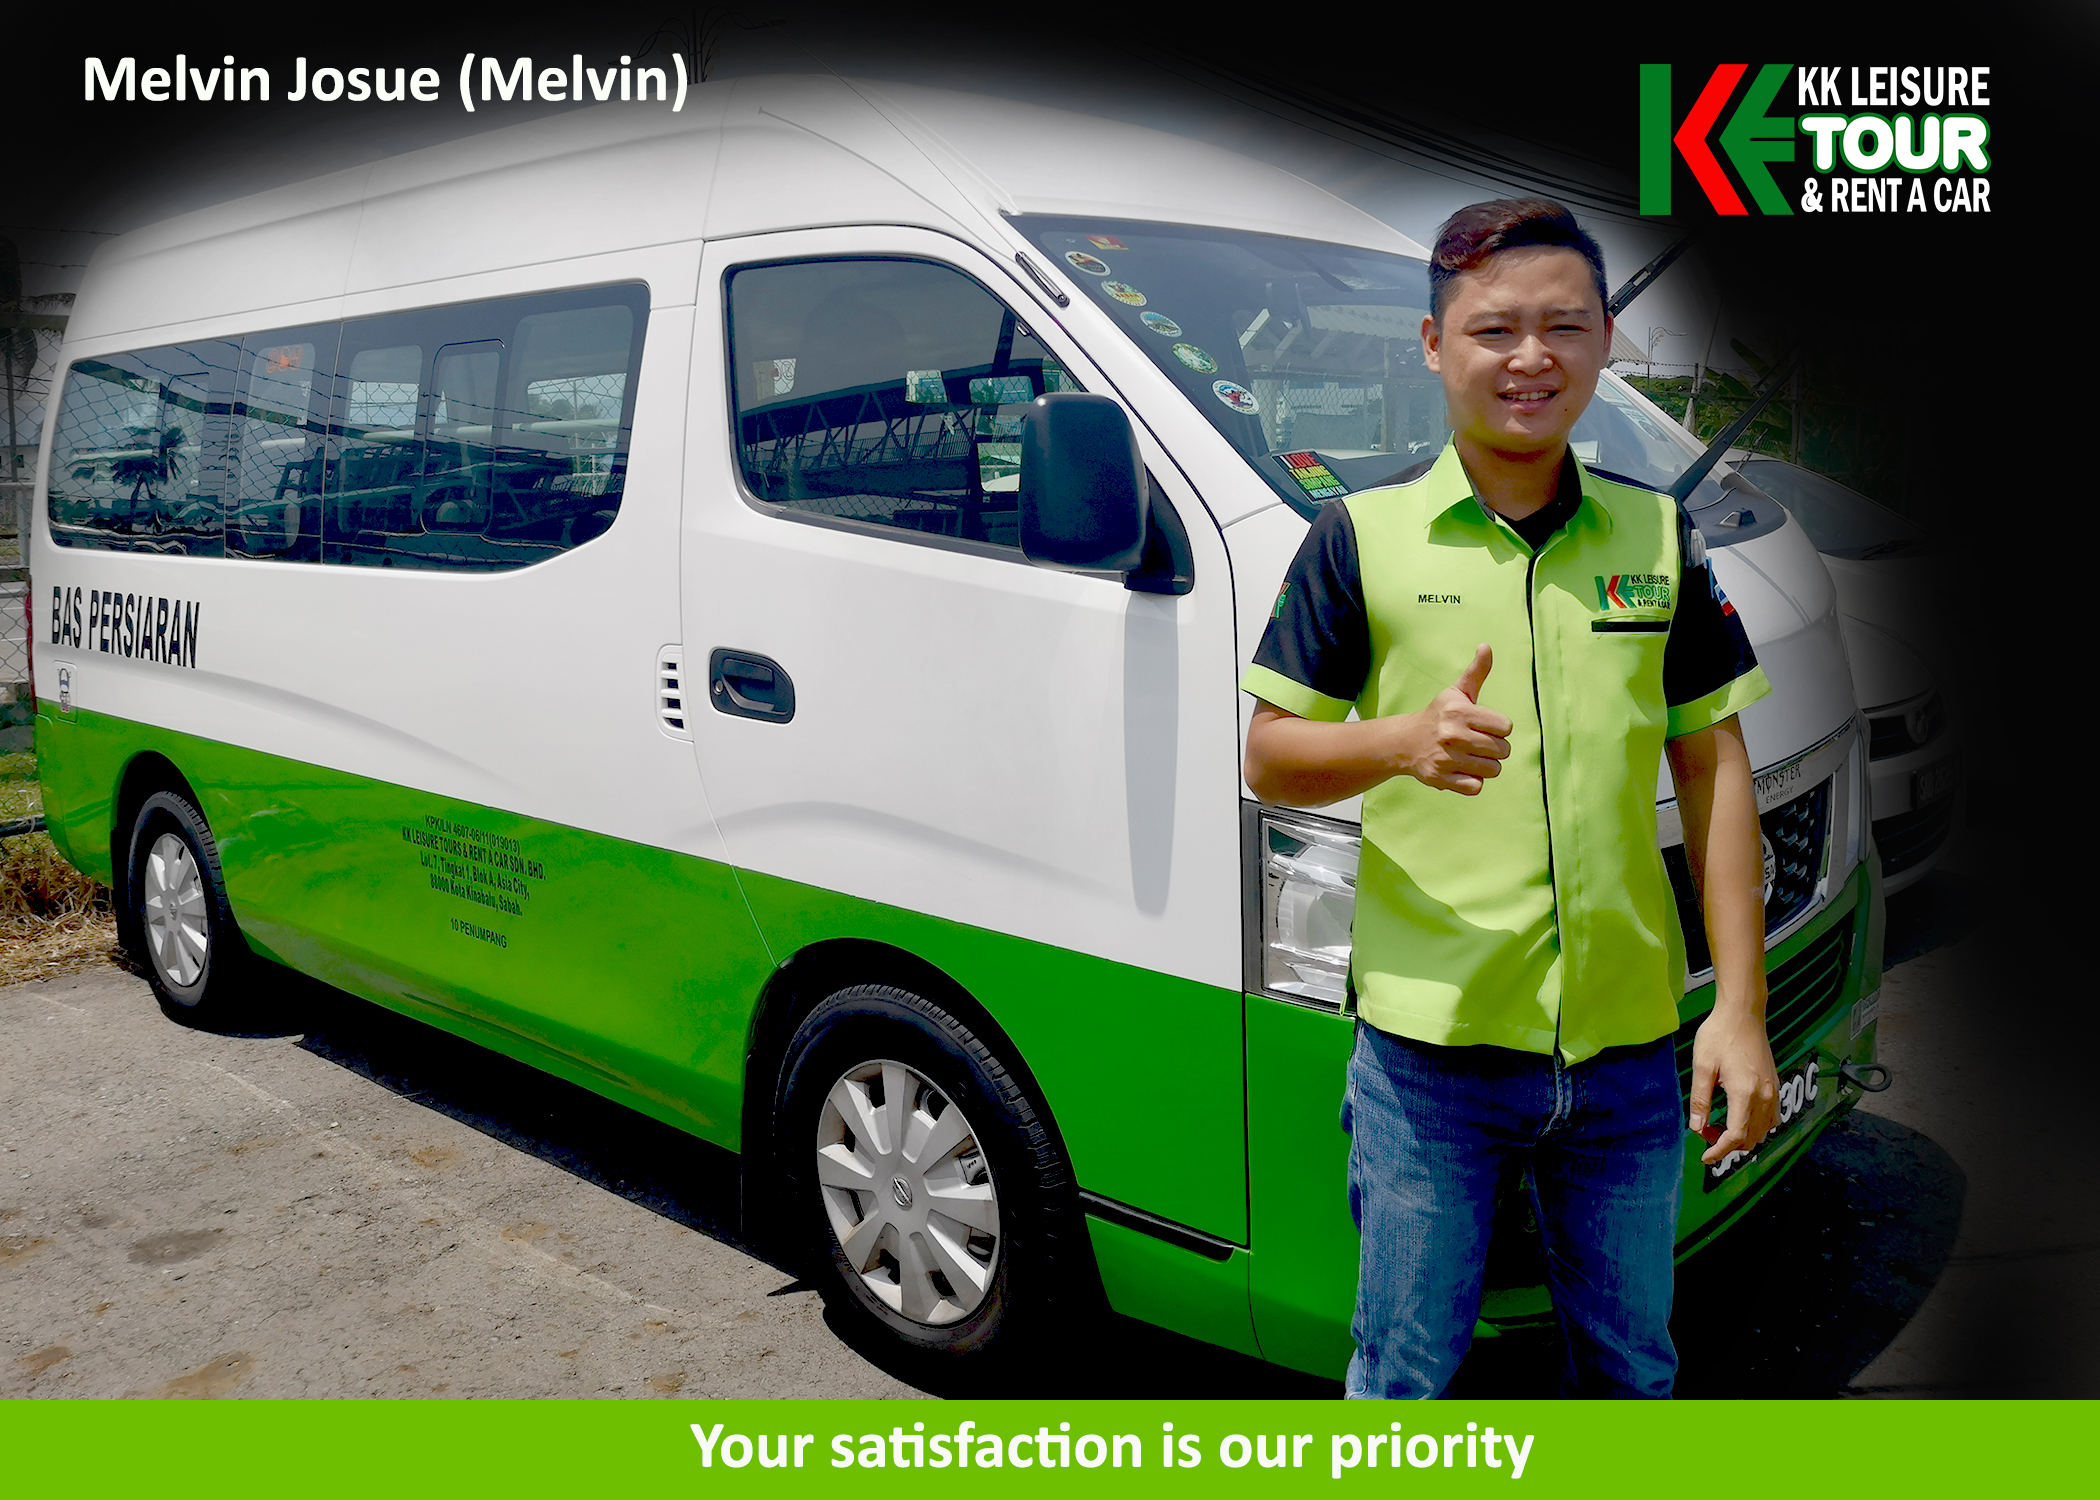 Kk airport car rental